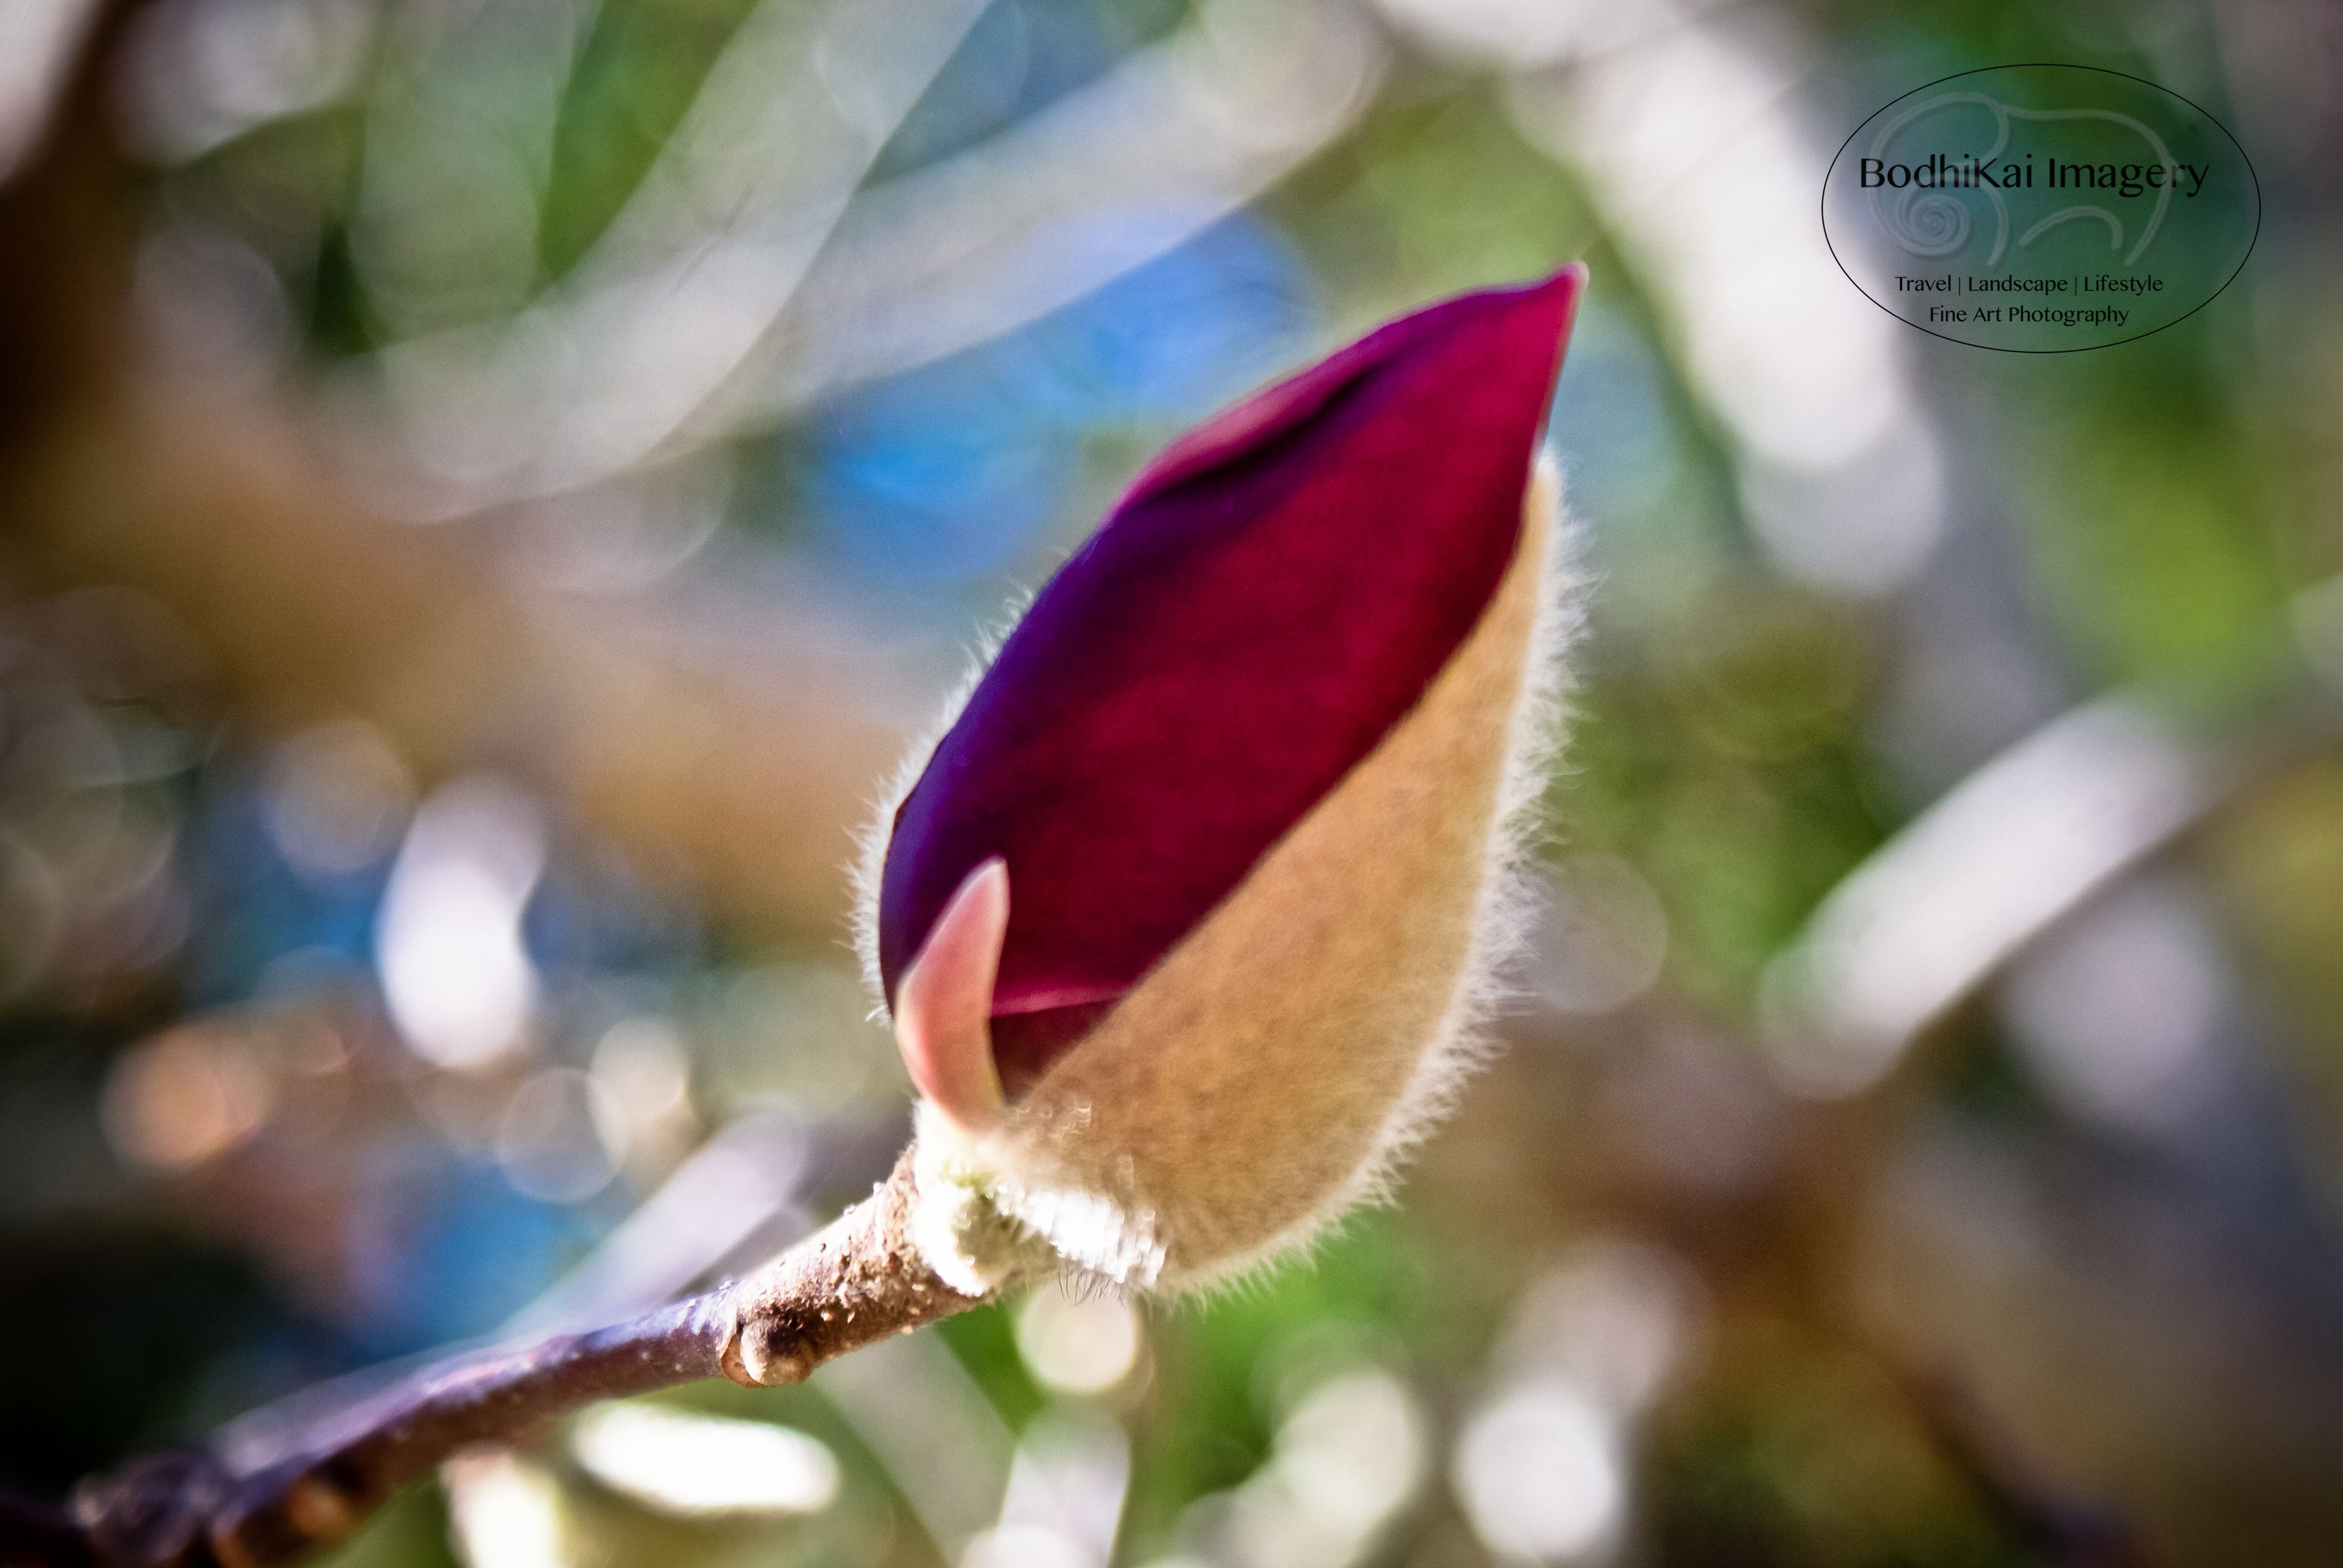 Sprouting Magnolia Nature Photographs Nature Photography Photography Gigs